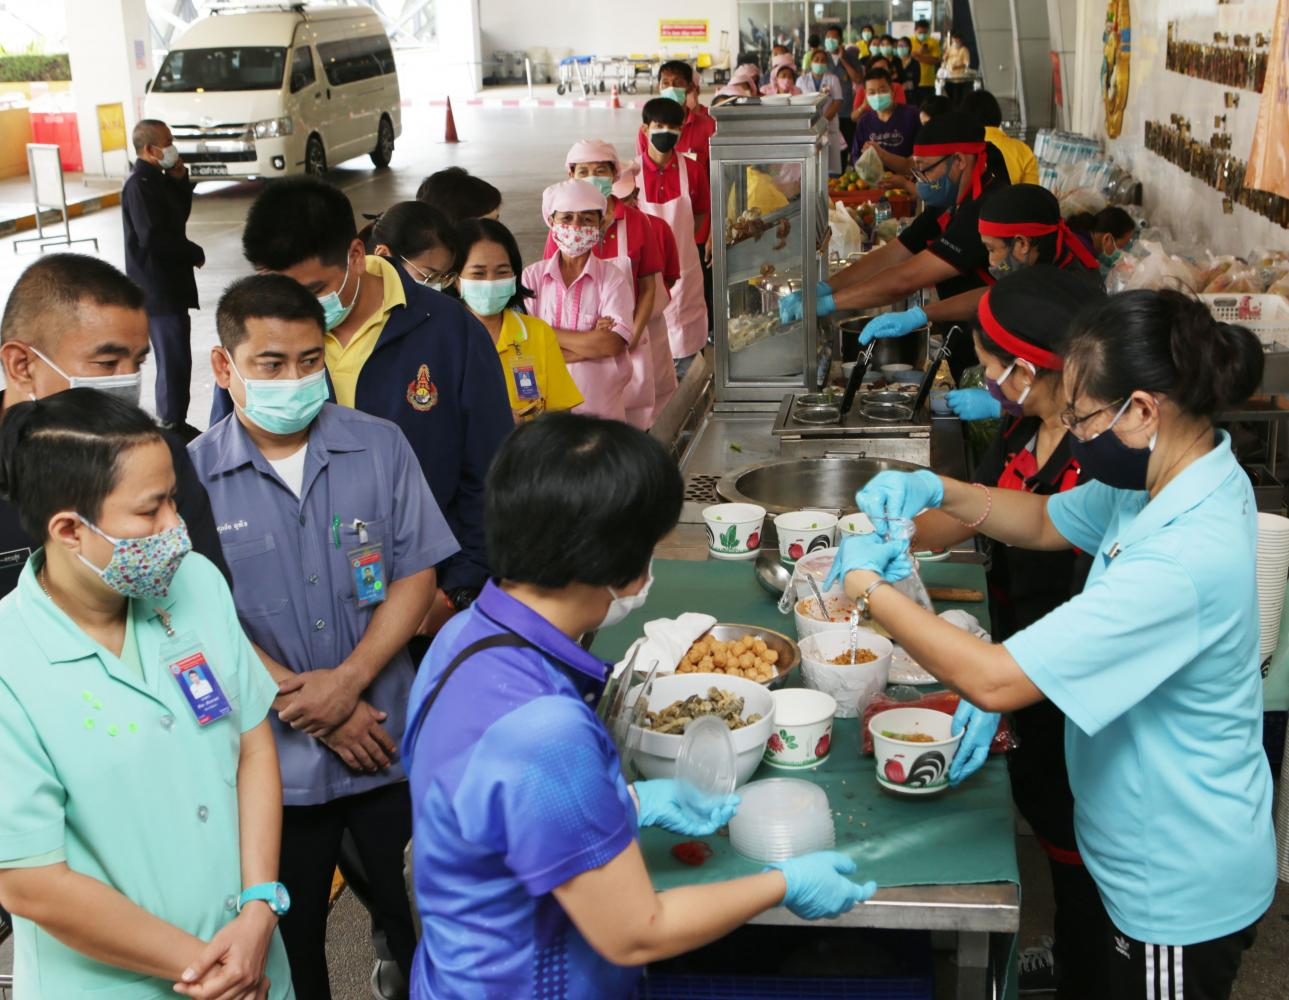 KEEPING UP THEIR STRENGTH: Staff from Suvapee Thammawattana Company which owns the Ying Charoen market in Bang Khen district yesterday set up food stands to cook free food for medical personnel at Bhumibol Adulyadej Hospital. (Photo by Apichit Jinakul)